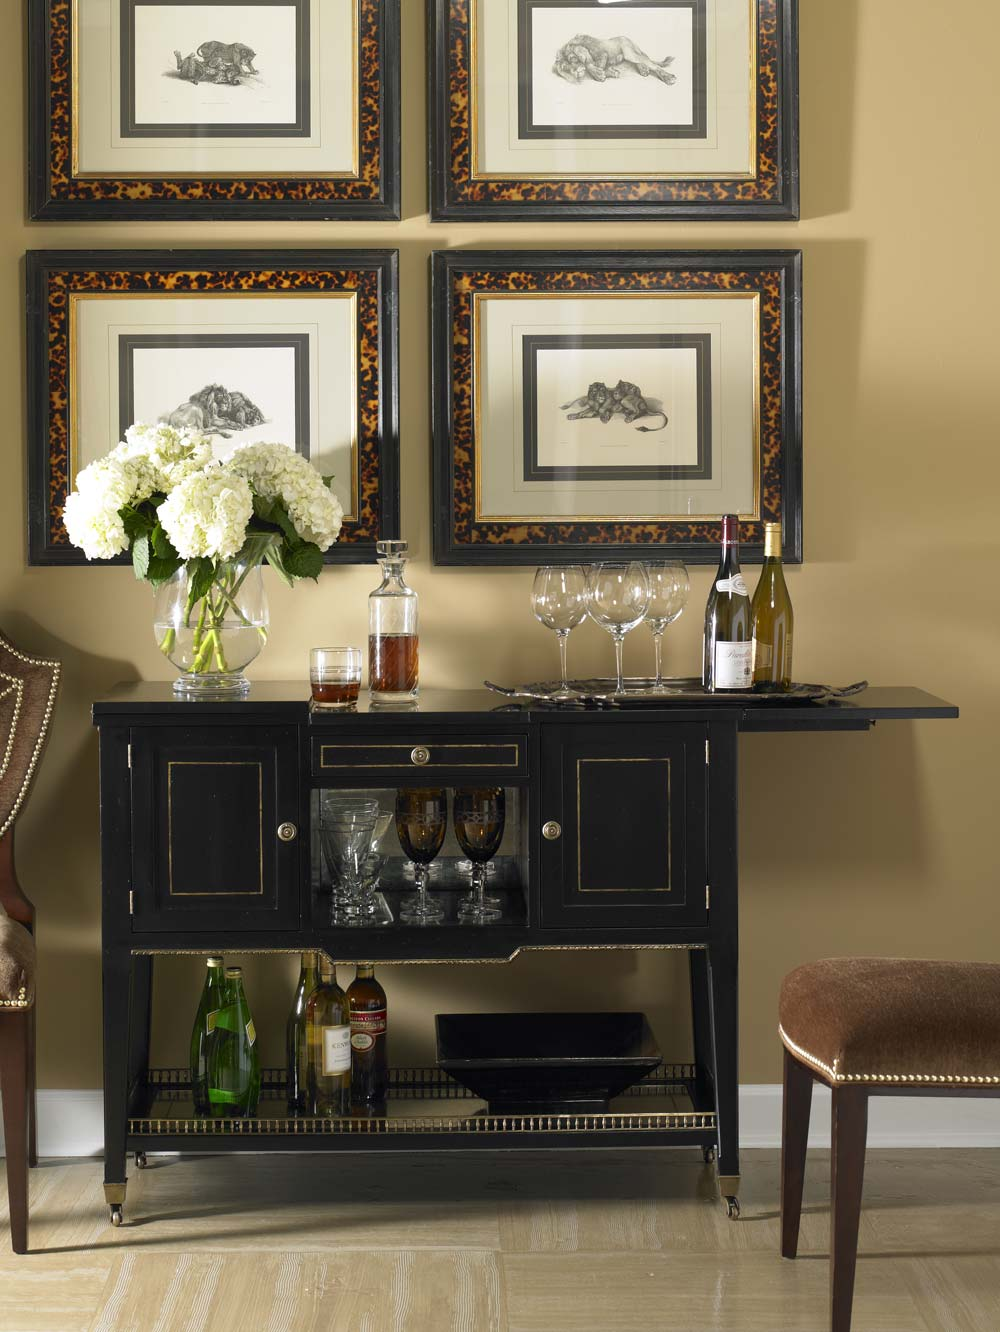 One of the hottest trends in design is the return of the mobile bar, and I love the one featured below! - McNabb & Risley